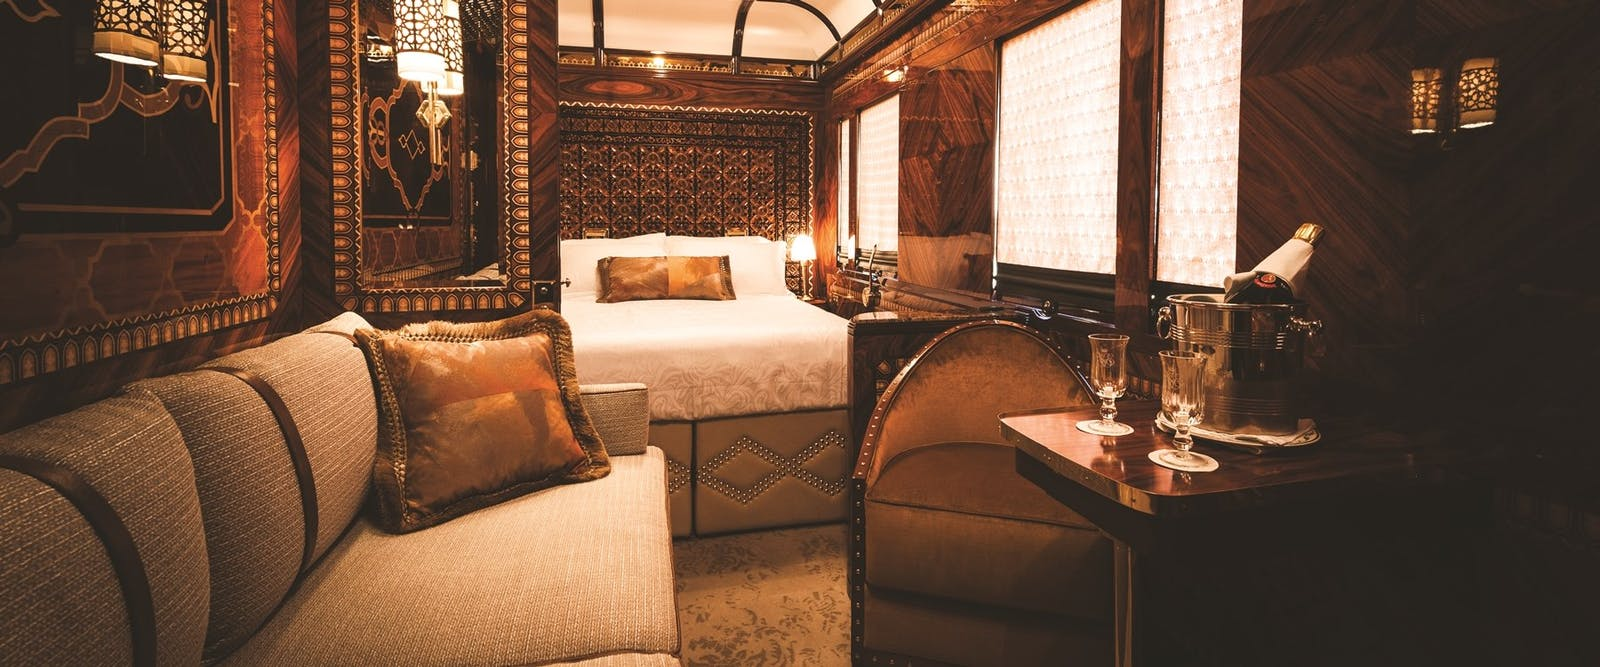 Accommodation on board Venice Simplon-Orient-Express, Venice, Italy